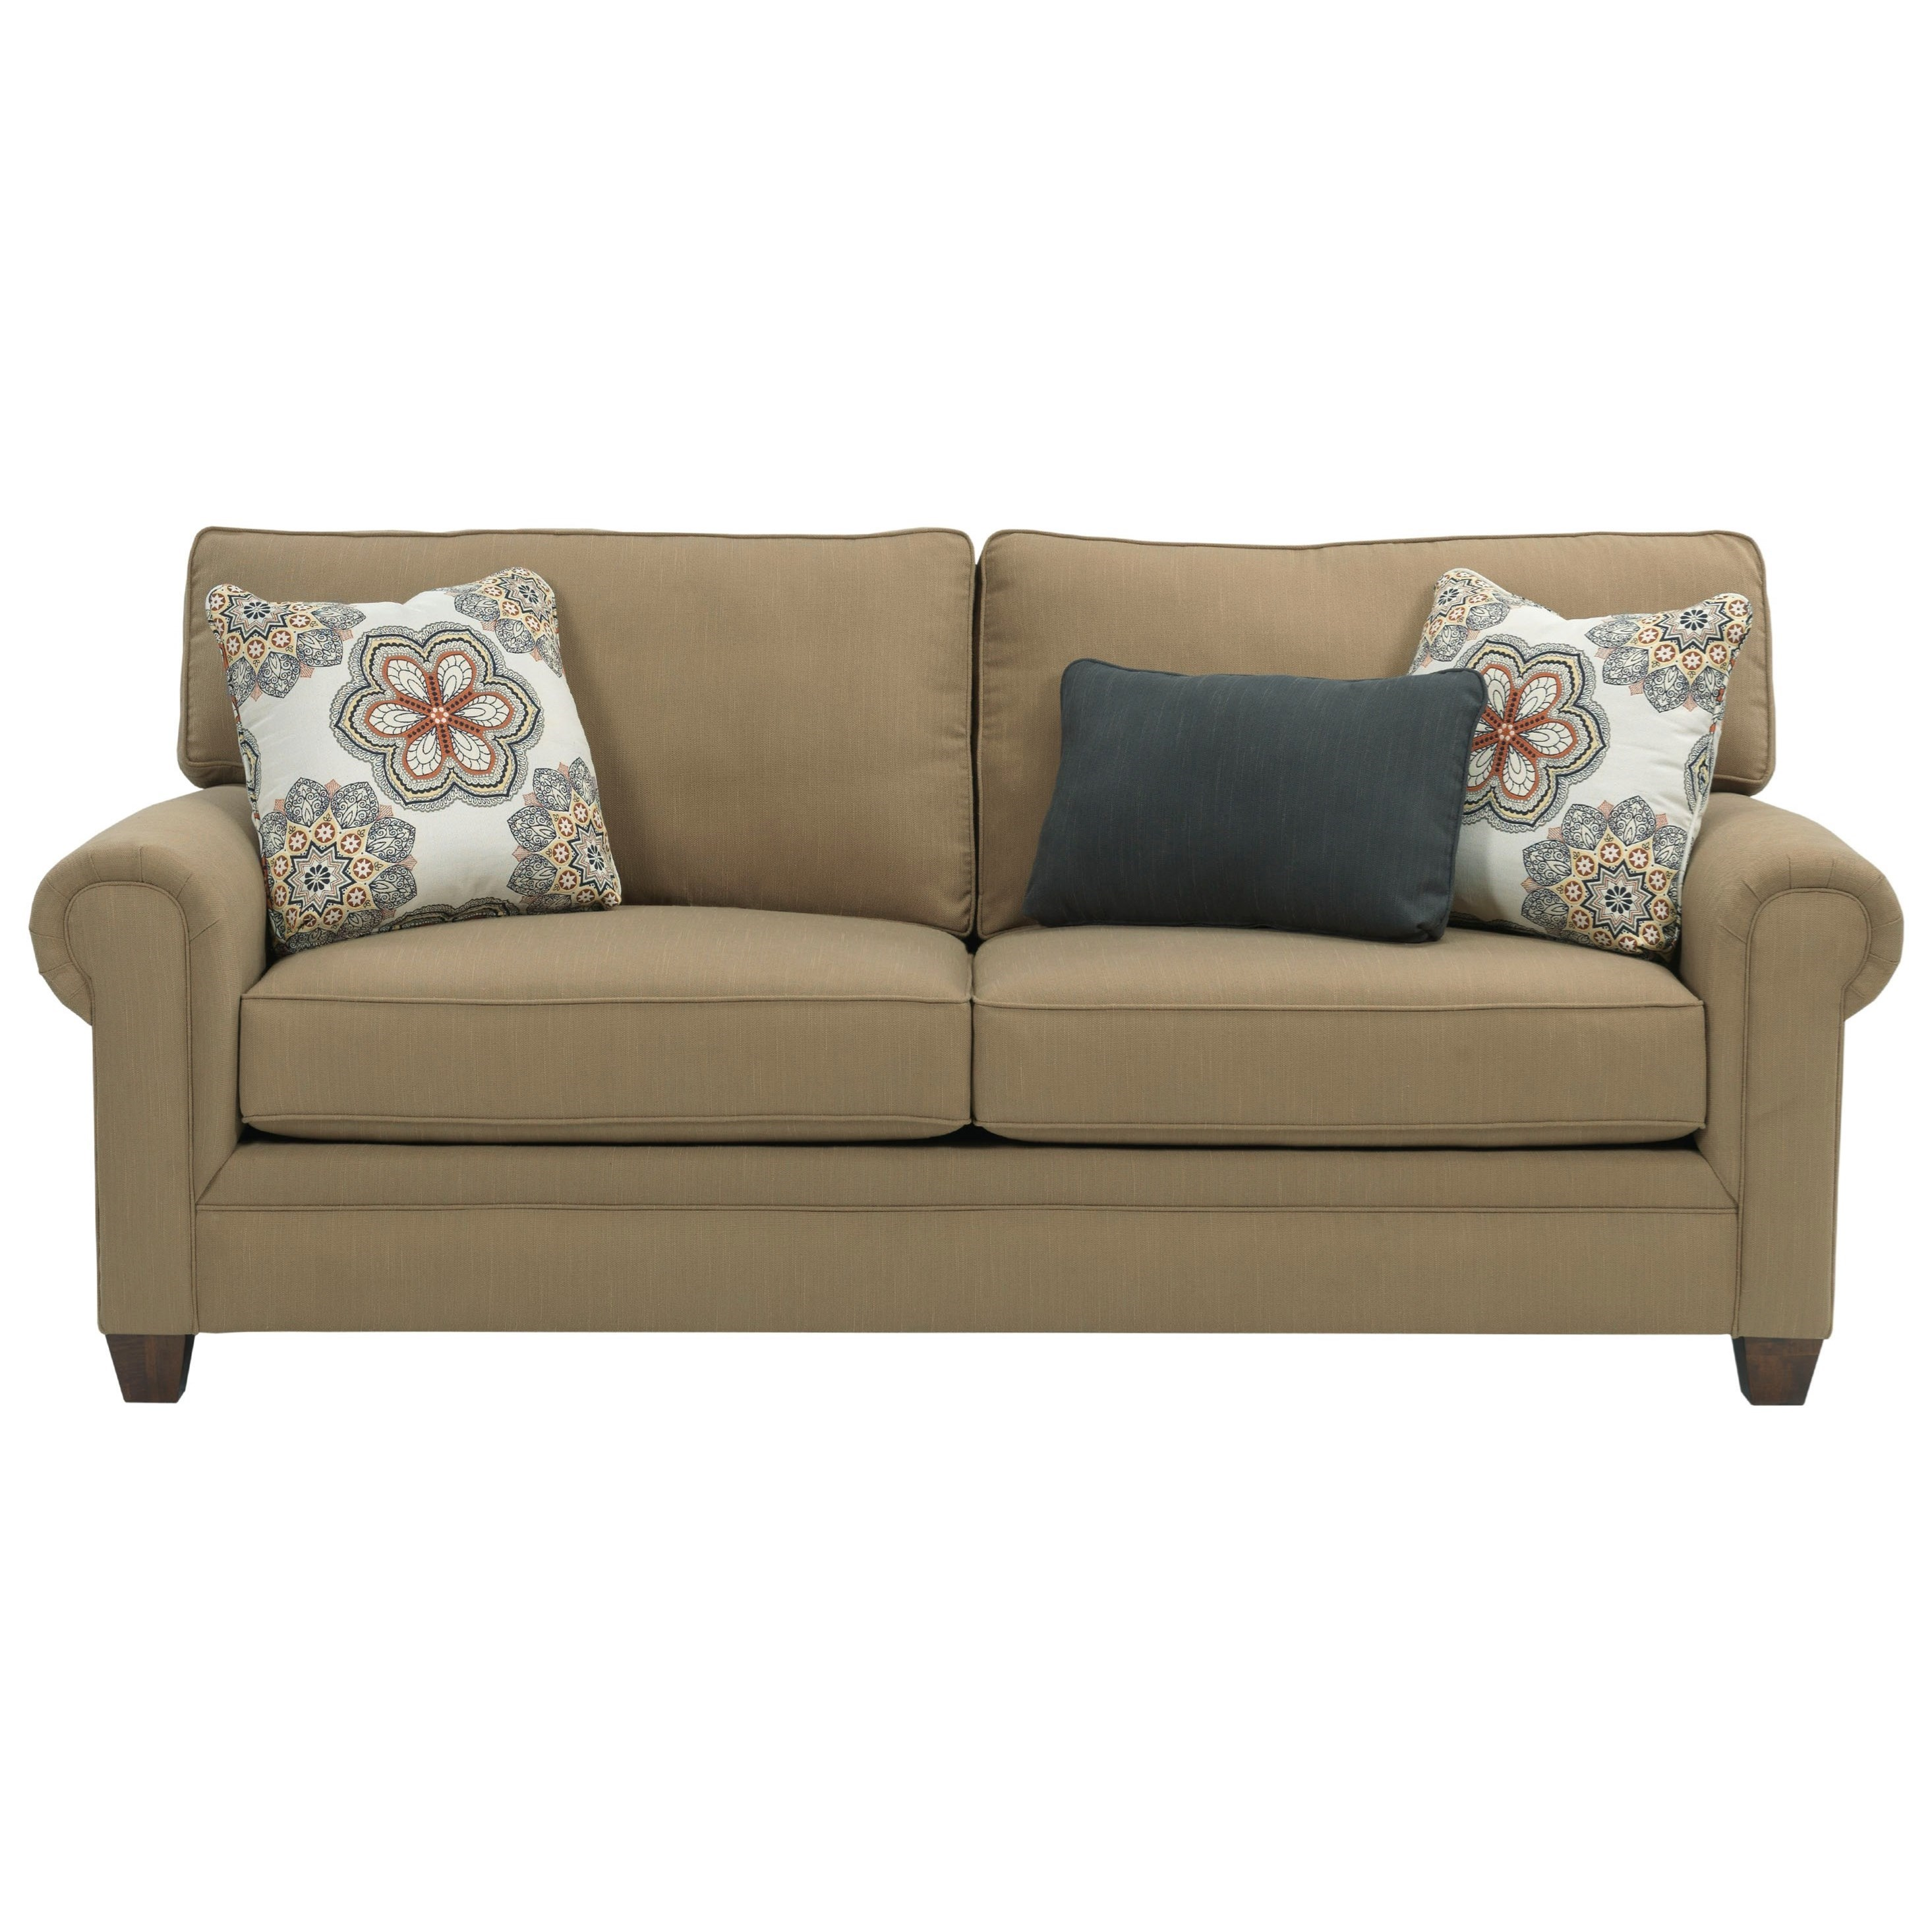 Broyhill Furniture Monica 3678 3 Transitional Sofa With Rolled Arms Becker Furniture World Sofas